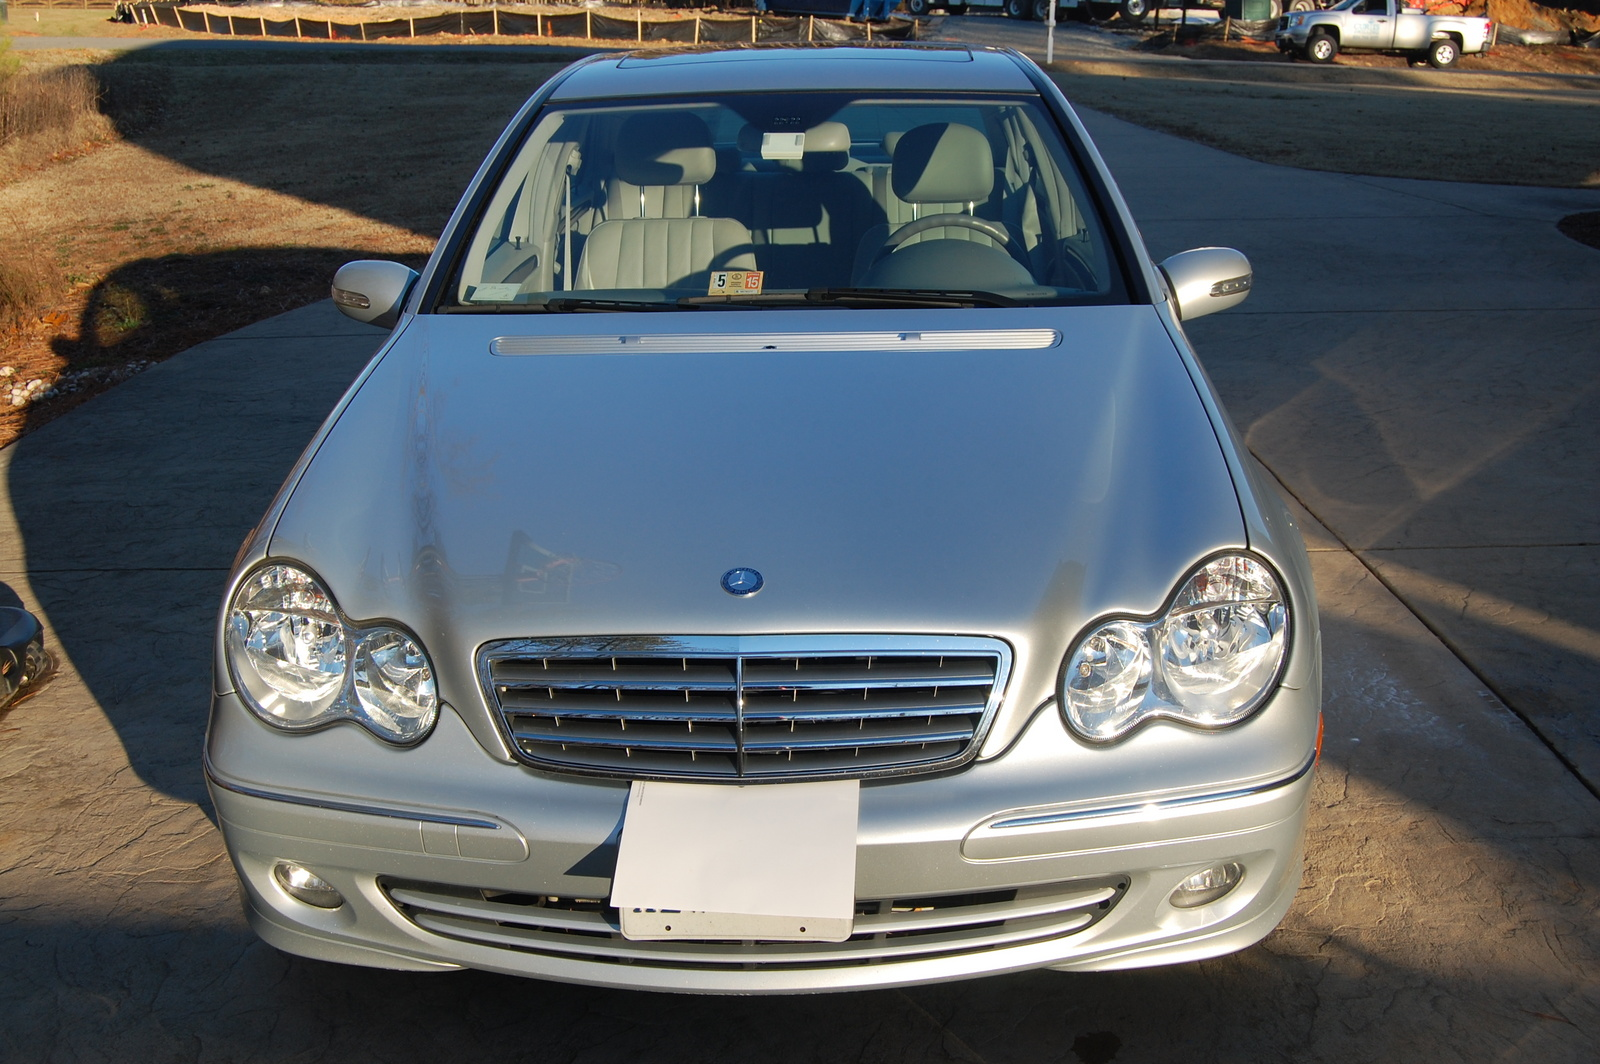 2006 mercedes benz c class overview cargurus for Mercedes benz c300 2006